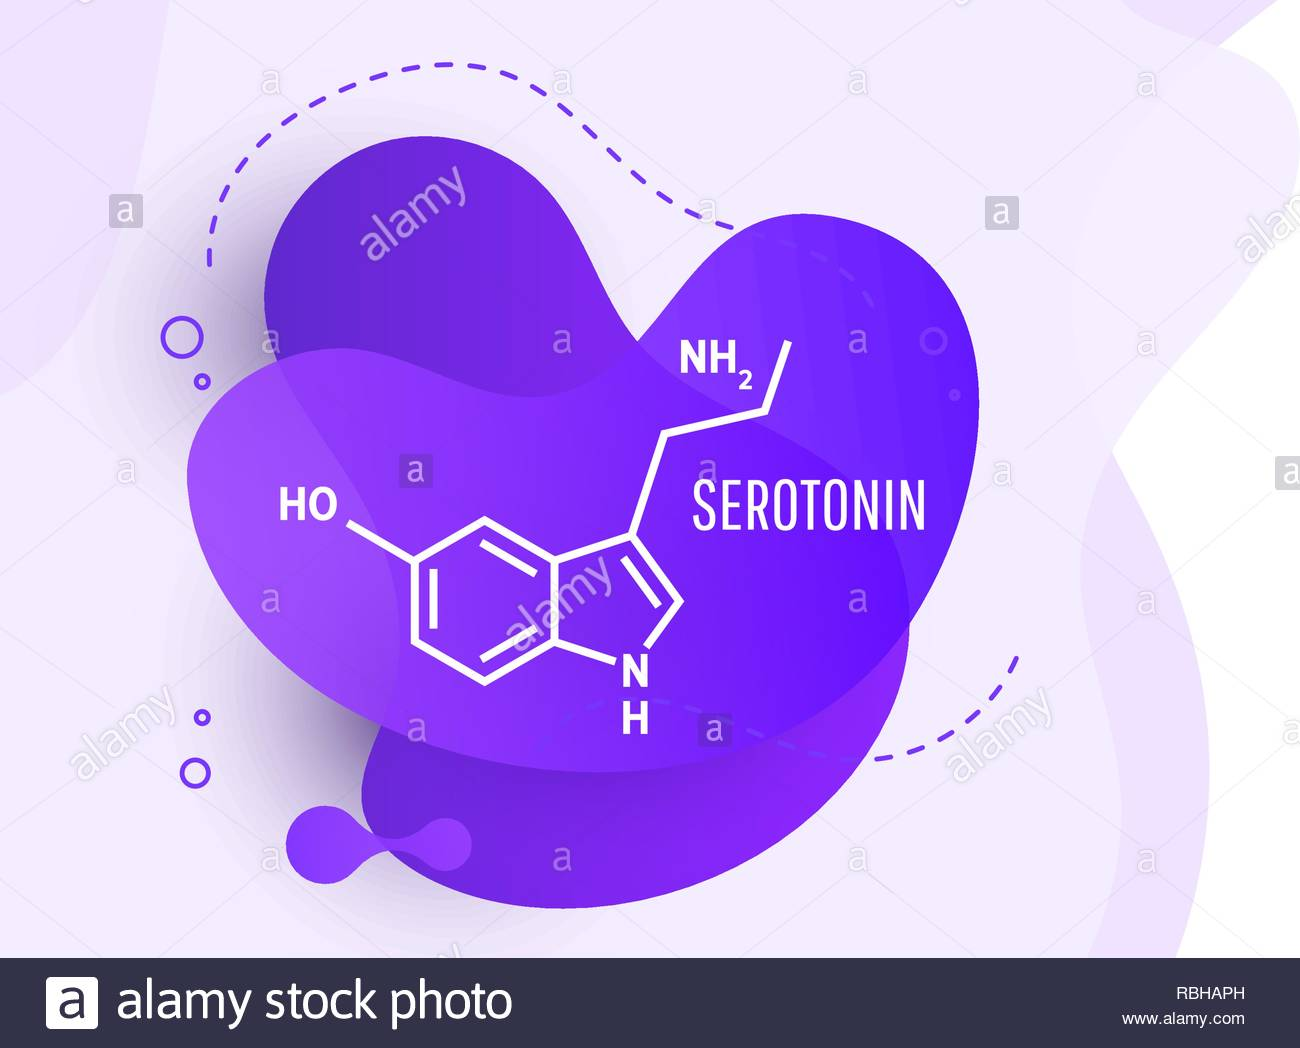 Serotonin hormone structural chemical formula on wave liquid 1300x1048